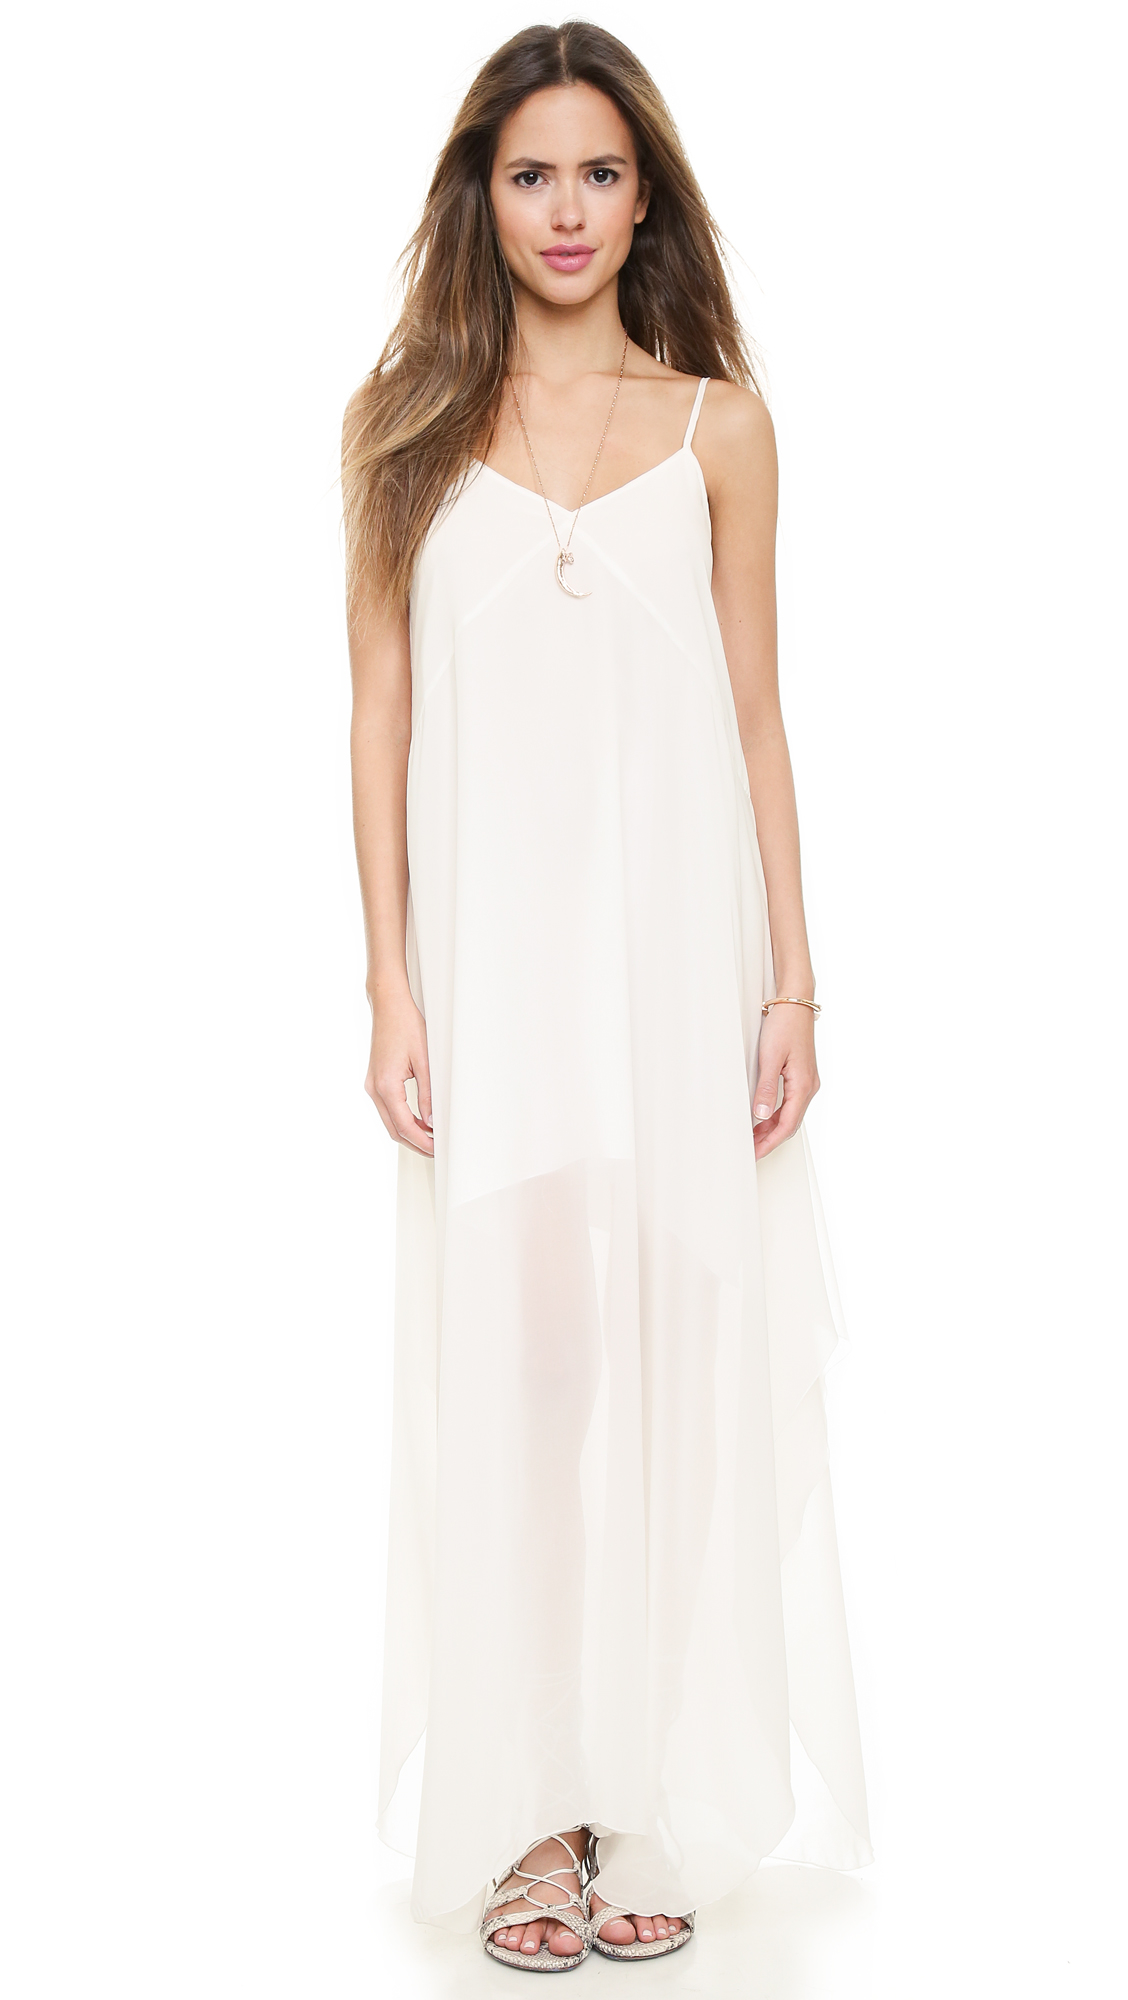 bc2bcea03b9d Lovers + Friends Curaca Maxi Slip Dress - Ivory in White - Lyst